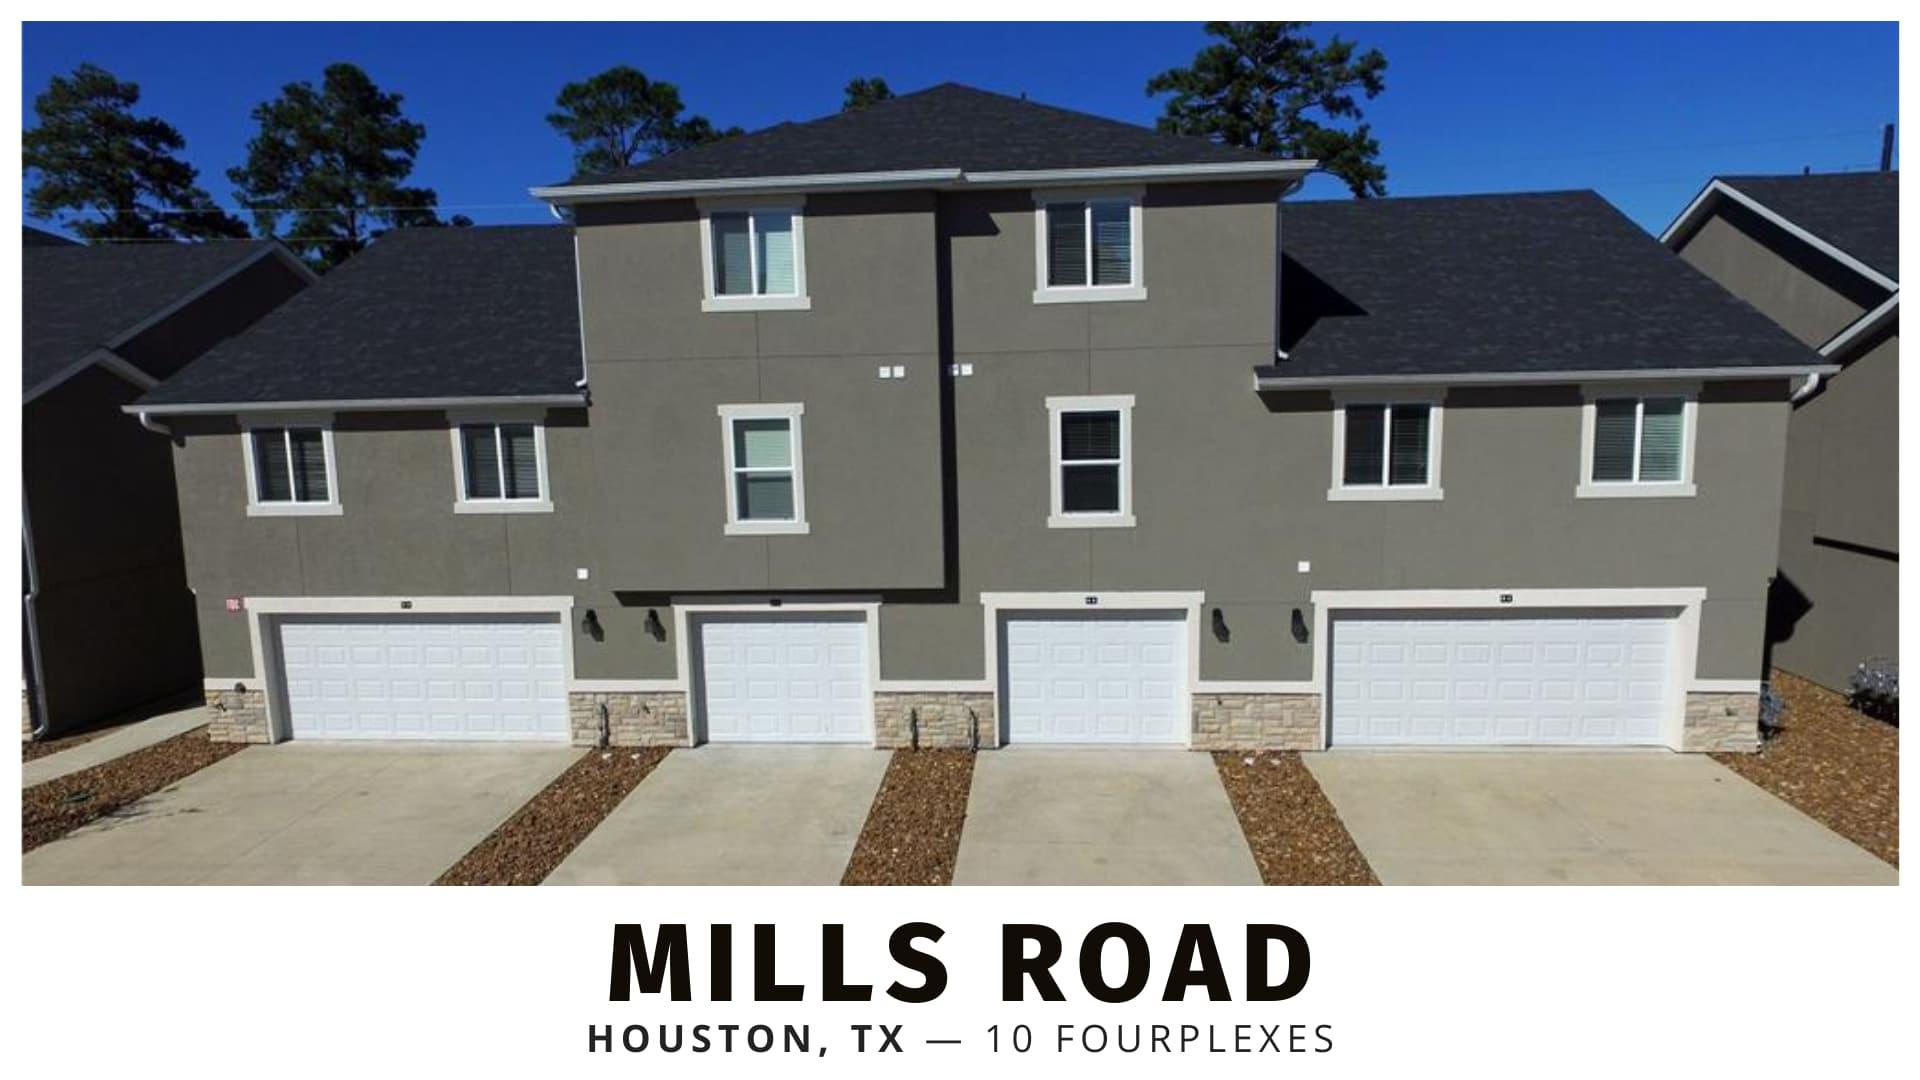 Mills Road duplexes, triplexes, and fourplexes in Houston, TX